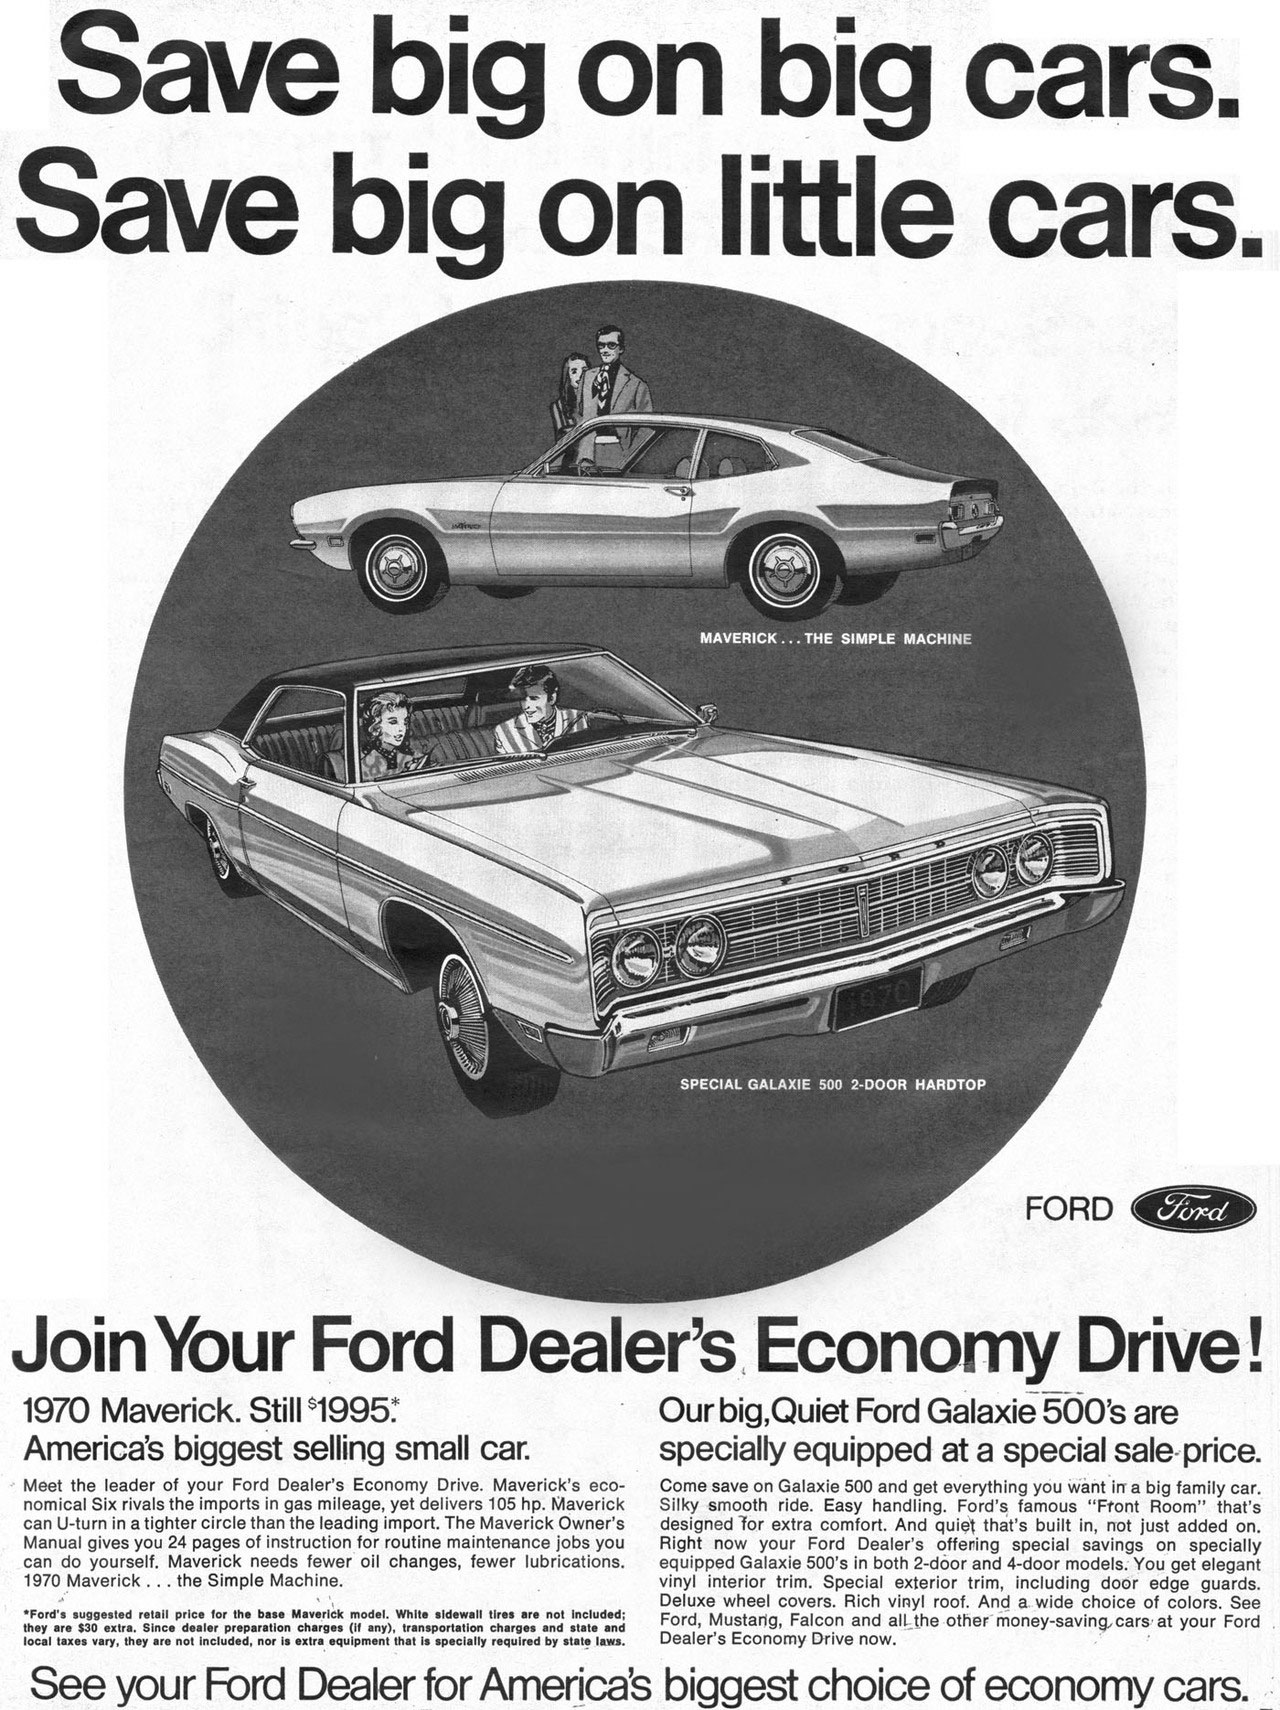 Save big on big cars. Save big on little cars.   FORD   Join Your Ford Dealer's Economy Drive!  1970 Maverick. Still 1995: America's biggest selling small car.  Meet the leader of your Ford Dealer's Economy Drive. Maverick's eco-nomical Six rivals the imports in gas mileage, yet delivers 105 hp. Maverick can U-turn in a tighter circle than the leading import, The Maverick Owner's Manual gives you 24 pages of instruction for routine maintenance jobs you can do yourself. Maverick needs fewer oil changes, fewer lubrications. 1970 Maverick ... the Simple Machine.  •Ford's suggested retafieprice for the base Maverick model. White sidewall tires are not Included; they local atraleSs3?raext:th.el:rce ndoetalinecrlutri::,''na.:'r'cht7aggurnae''rYit'thtrarirsPreacti'a°11; errhtgruresdabnydsVeelat:sd.  Our big,Quiet Ford Galaxie 500's are  specially equipped at a special sale price.  Come save on Galaxie 500 and get everything you want in a big family car. Silky smooth ride. Easy handling. Ford's famous ''Front Room'' that's designed for extra comfort. And quiet that's built in, not just added on. Right now your Ford Dealer's offering special savings on specially equipped Galaxie 500's in both 2-door and 4-door models. You get elegant vinyl interior trim. Special exterior trim, including door edge guards. Deluxe wheel covers. Rich vinyl roof. And a wide choice of colors. See Ford, Mustang, Falcon and all the other money-saving,cars at your Ford Dealer's Economy Drive now.  See your Ford Dealer for America's biggest choice of economy cars.